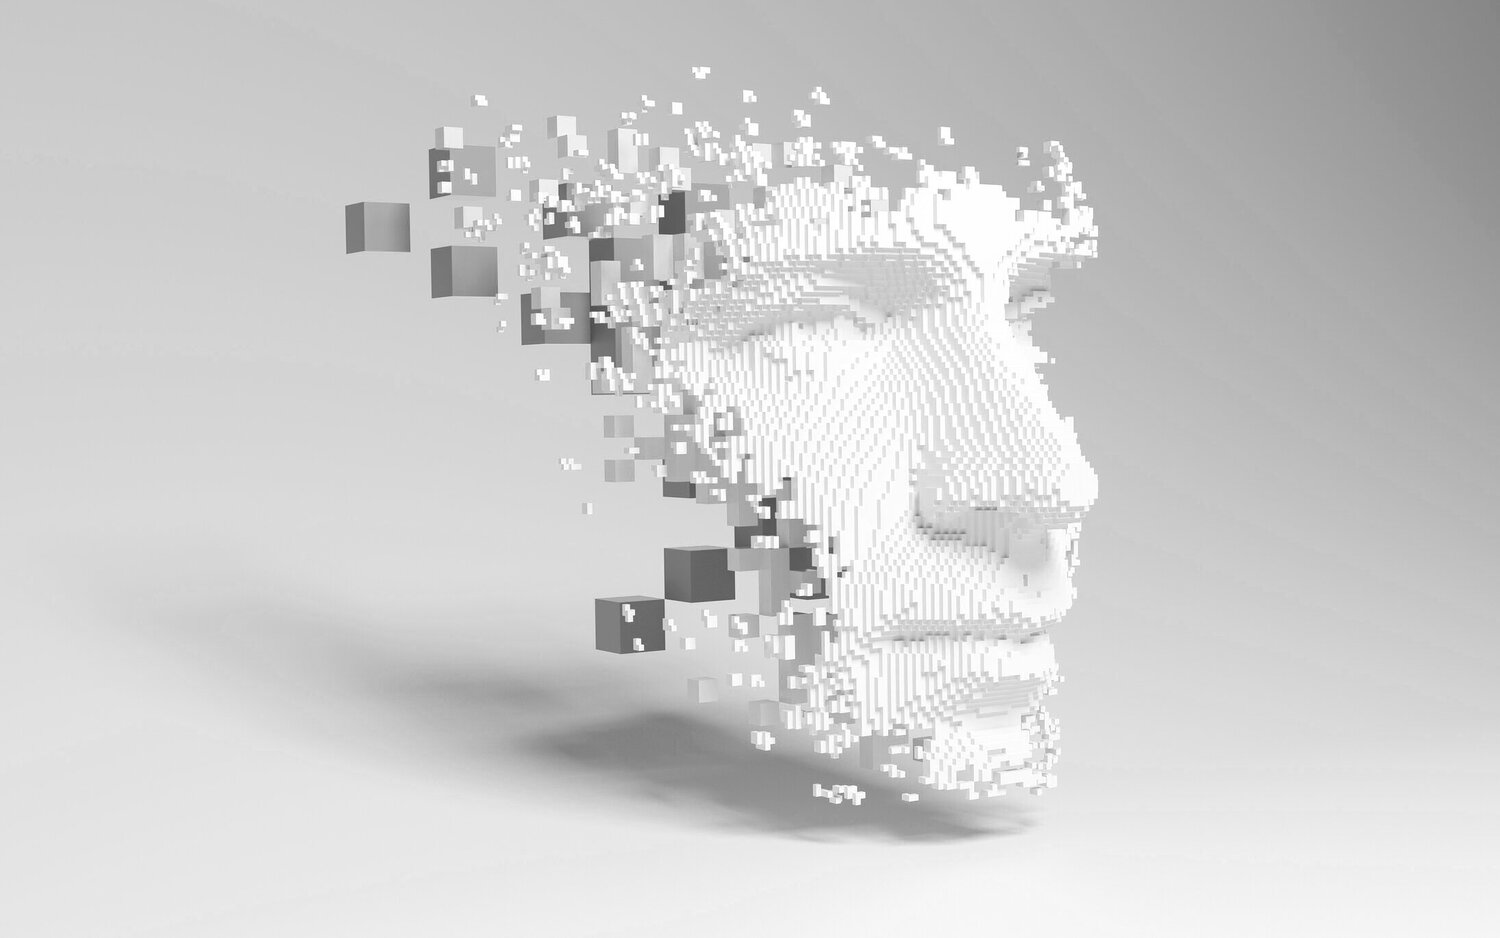 Emerging AI Will Drive The Next Wave Of Big Tech Monopolies